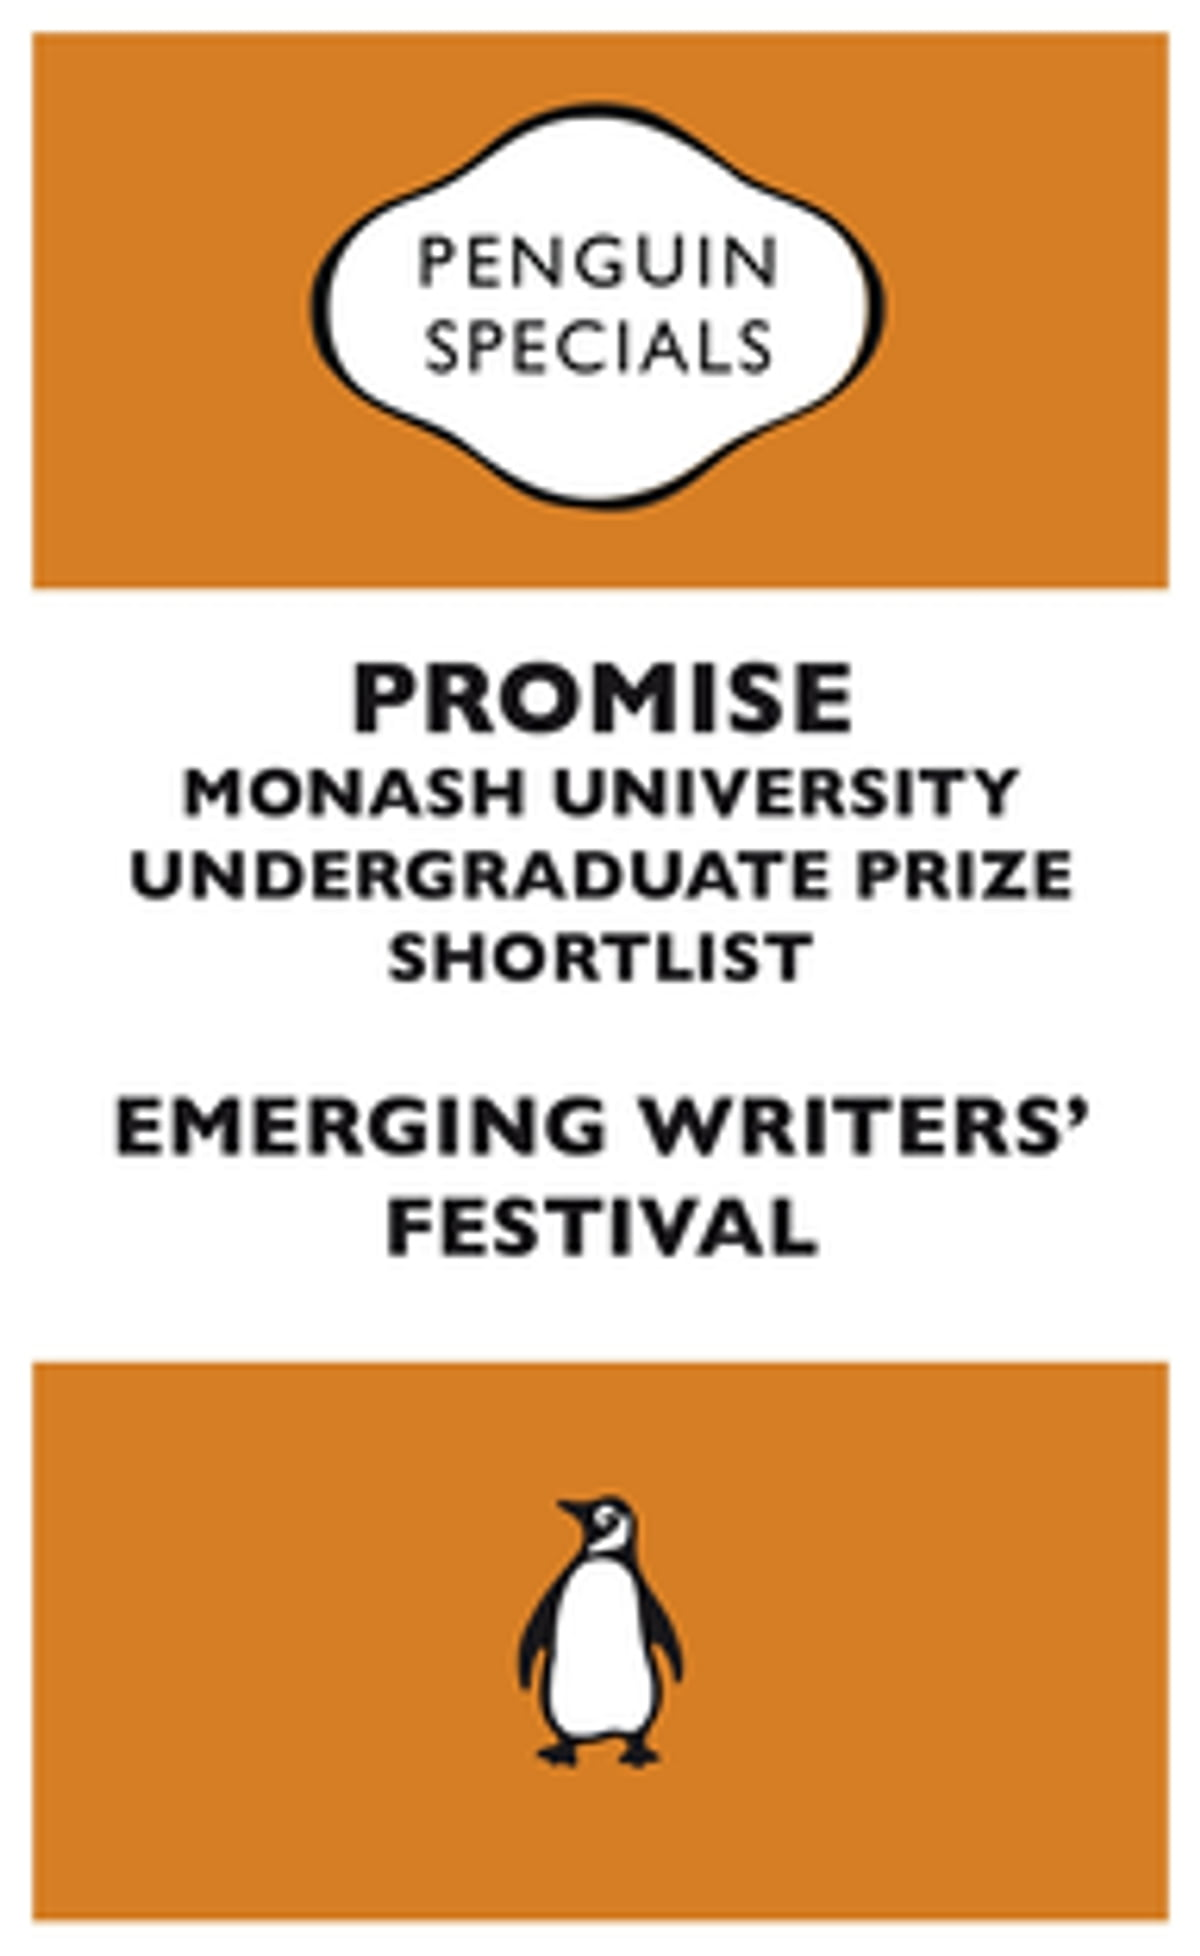 monash creative writing prize shortlist